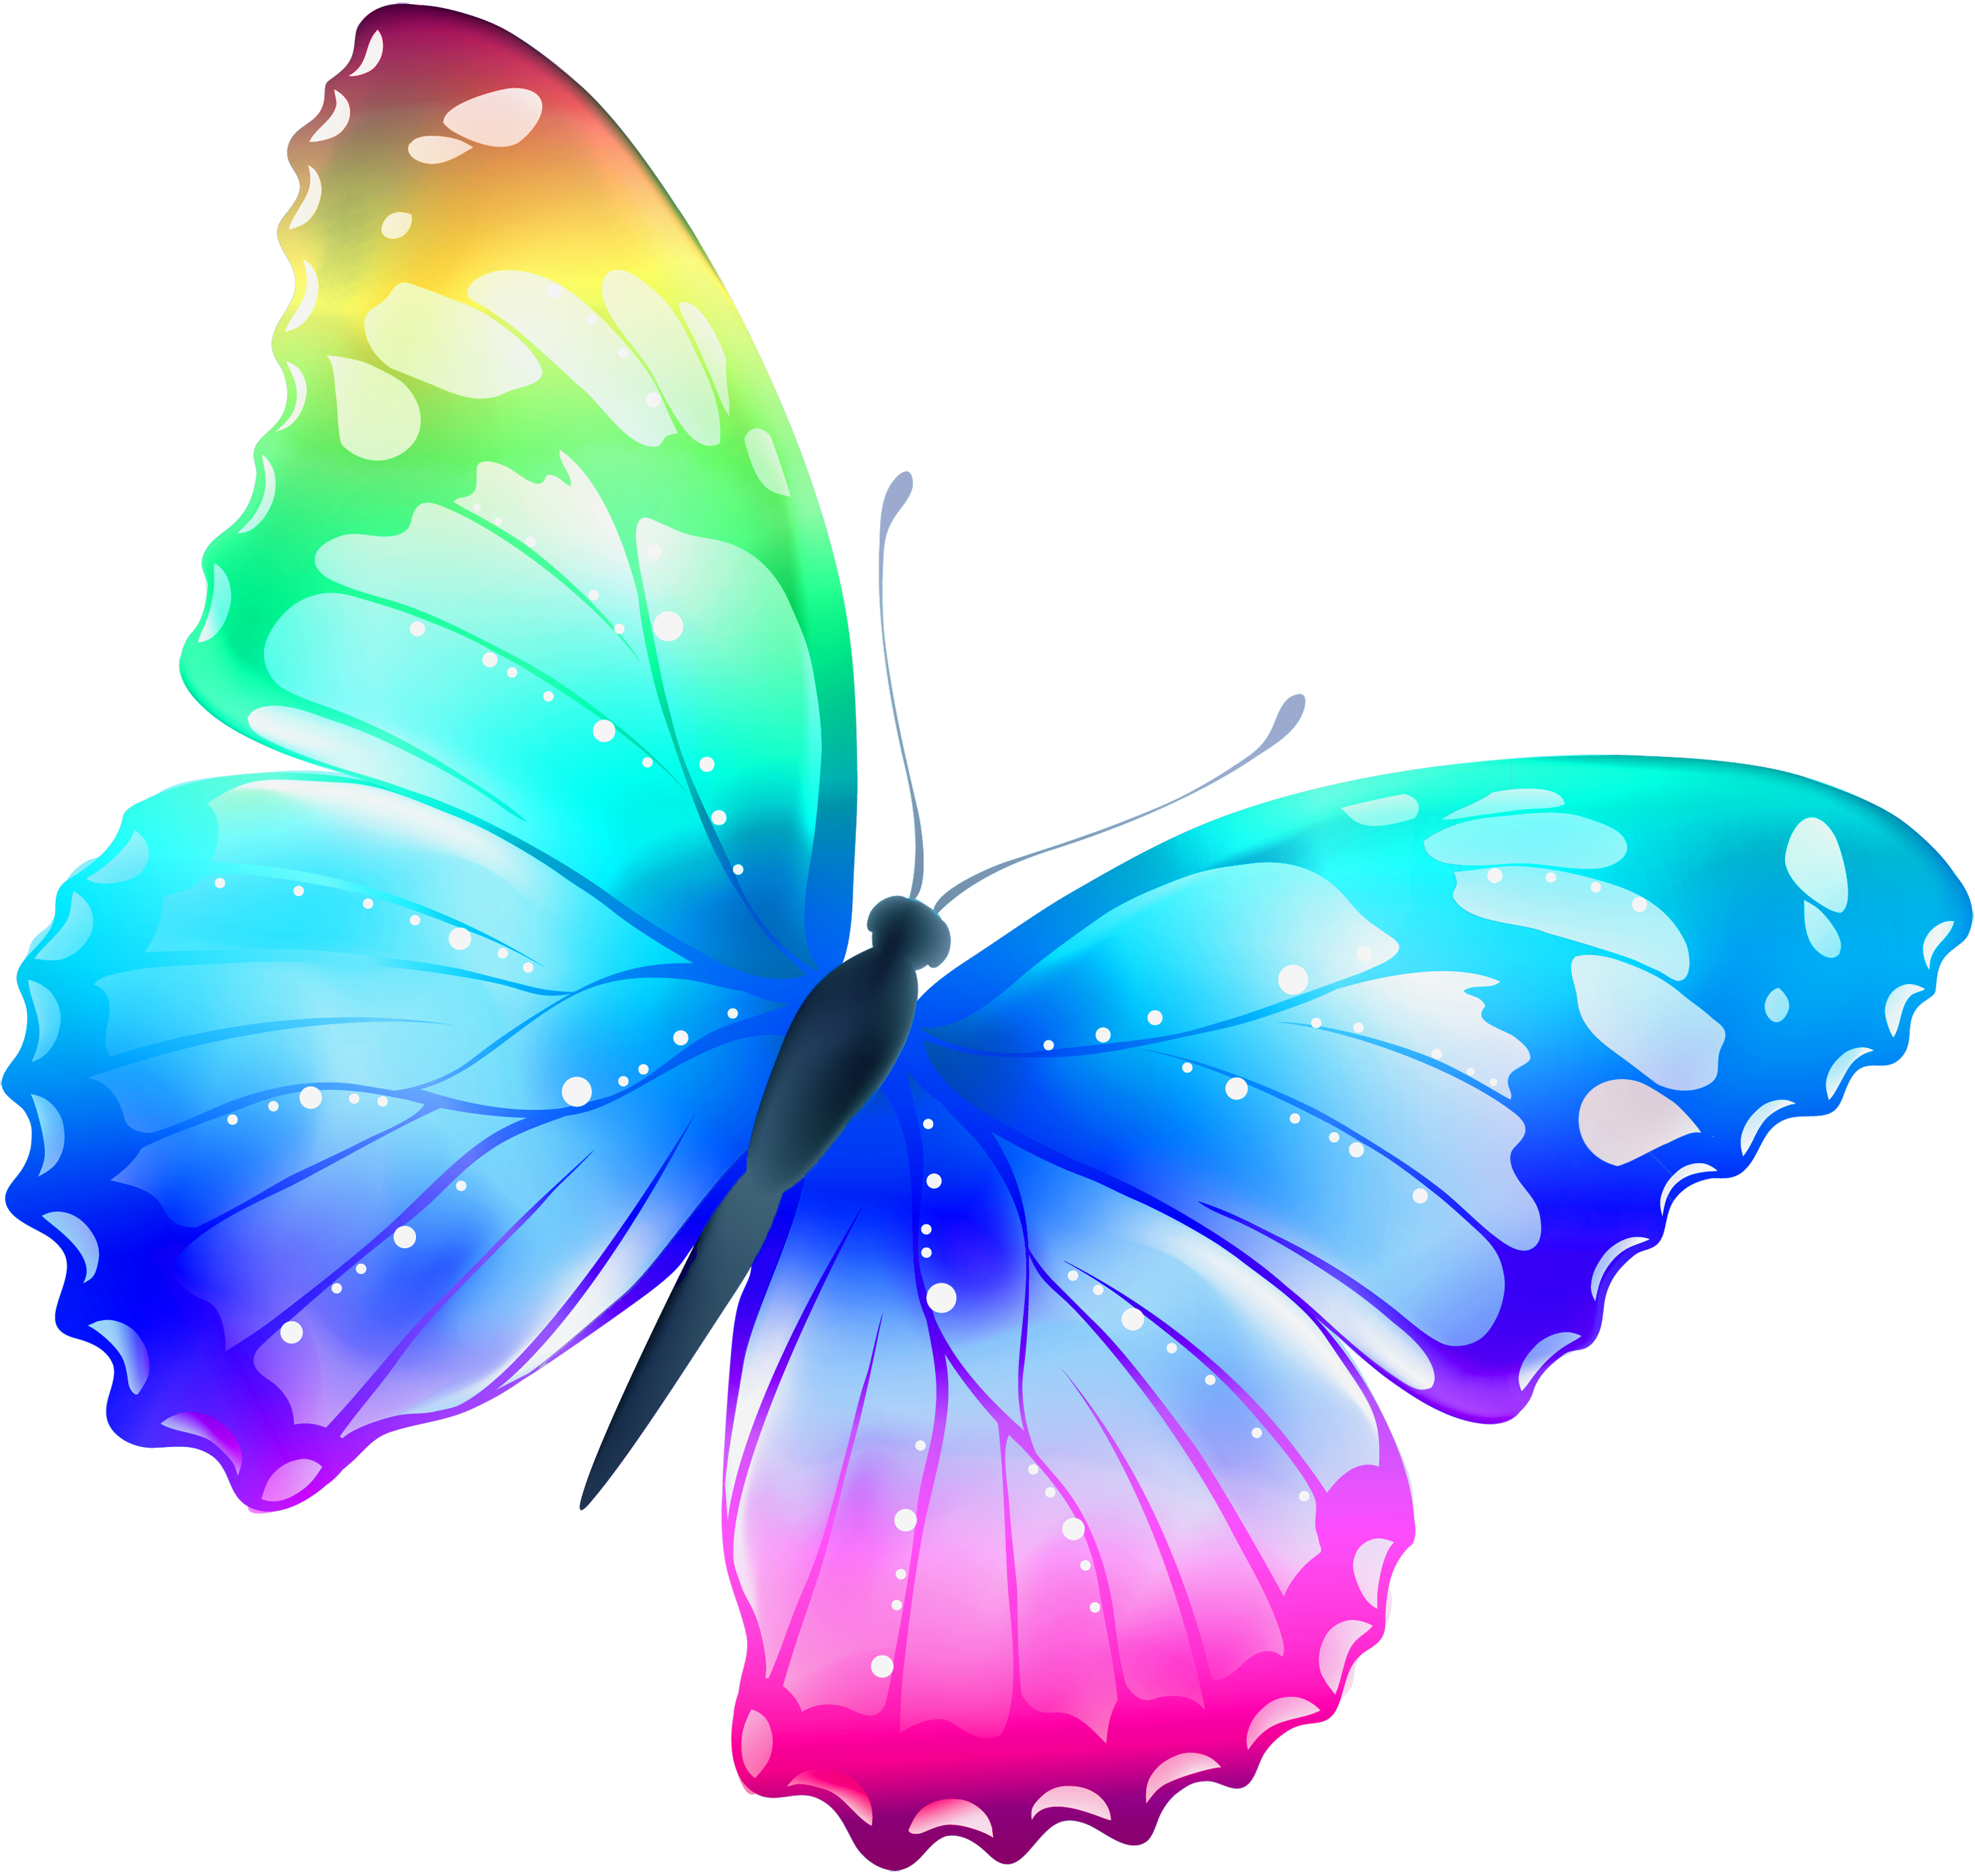 Rainbow Butterfly Png Border - View full size ?